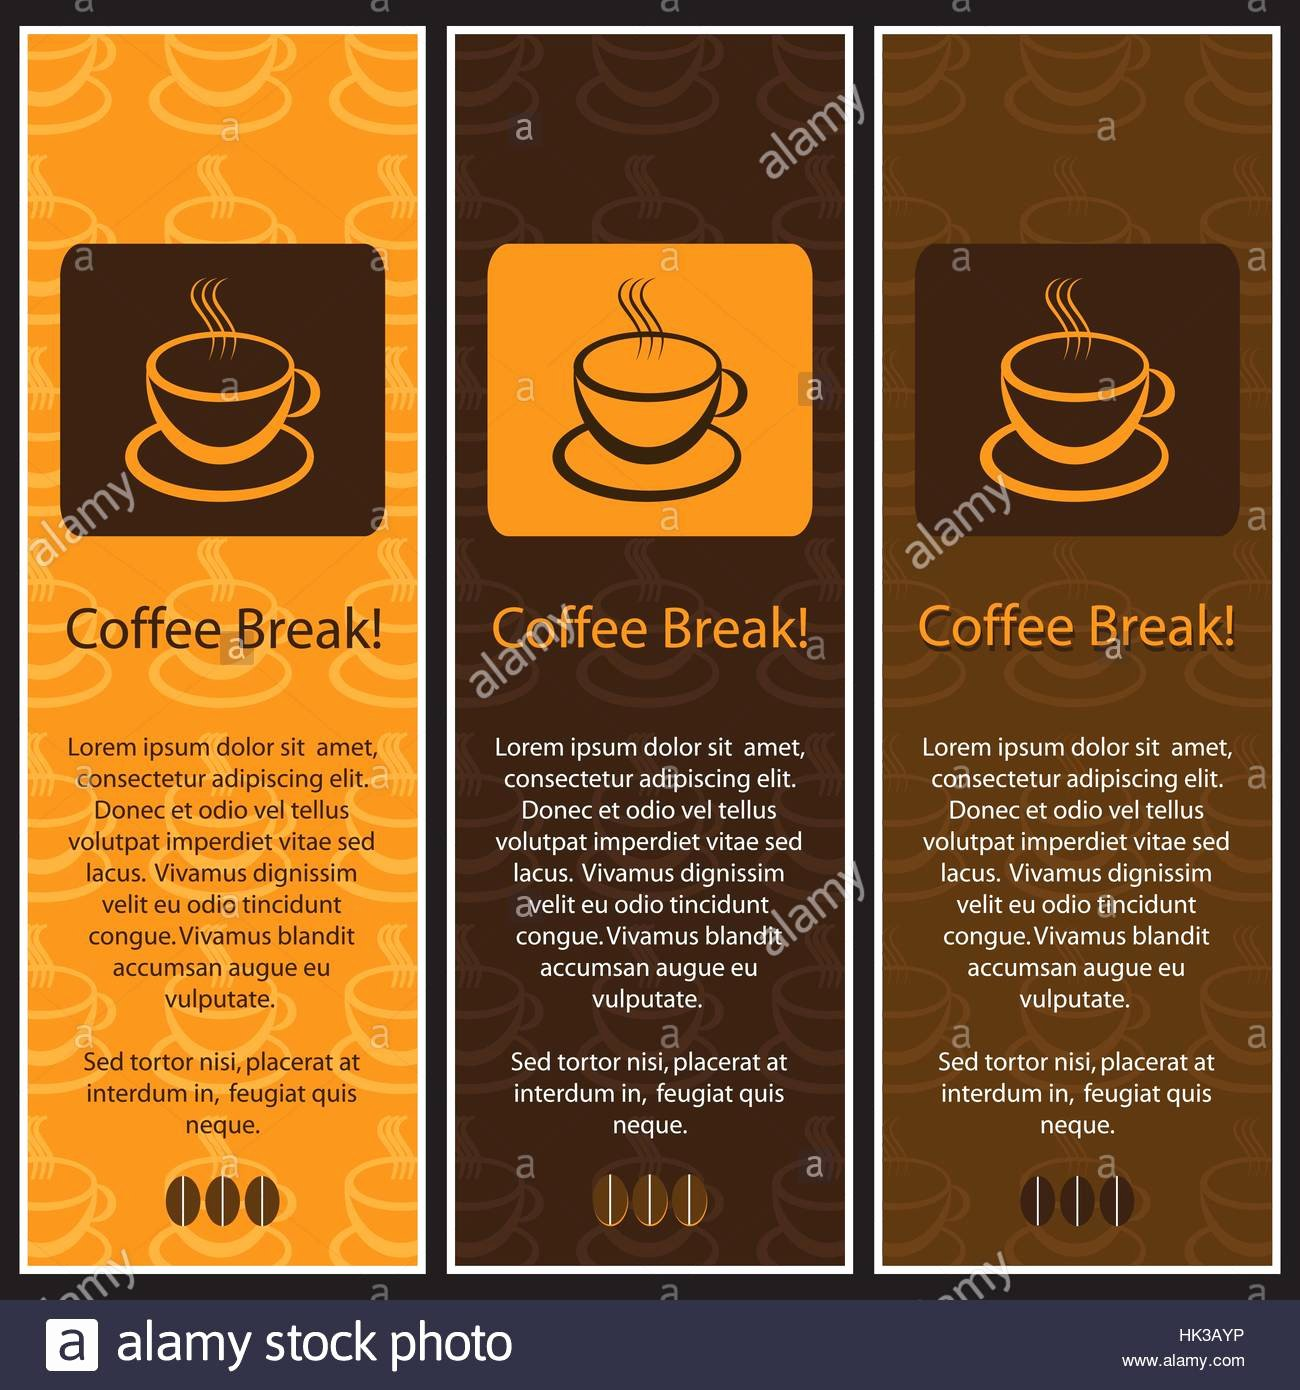 Coffee Shop Menu Template Lovely Set Of 3 Coffee Shop Banner or Menu Template Designs Stock